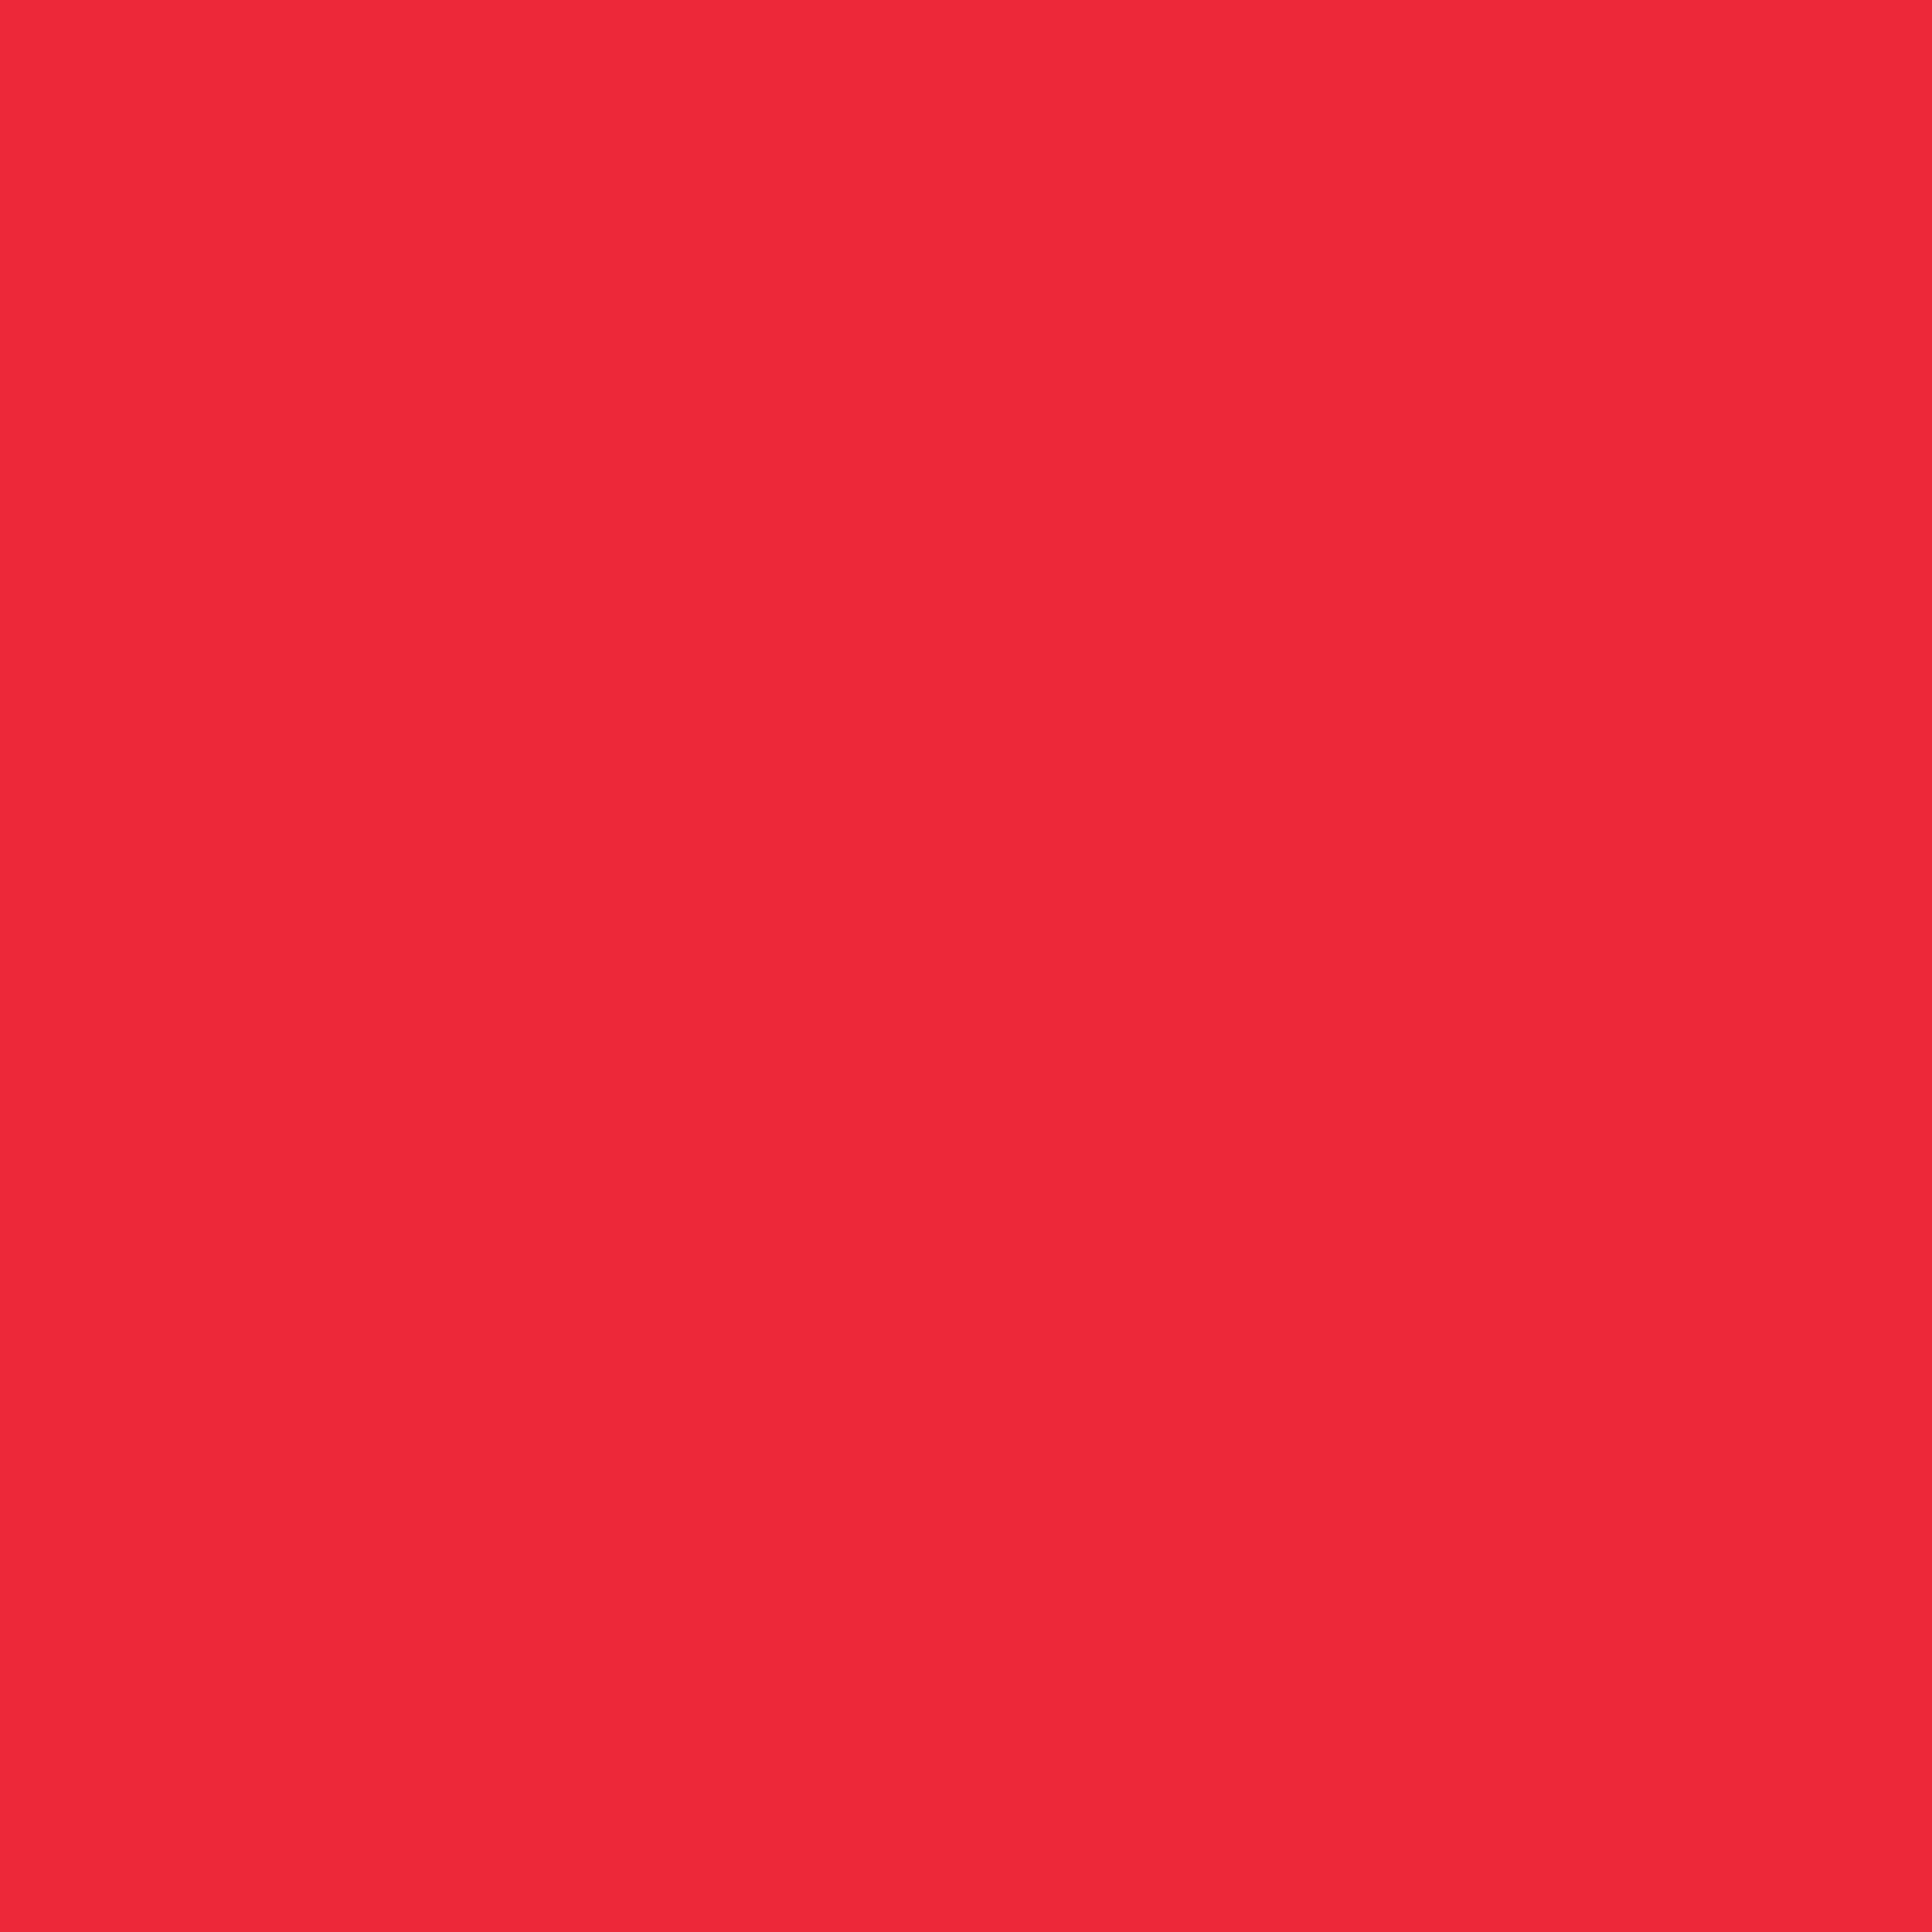 2048x2048 Red Pantone Solid Color Background